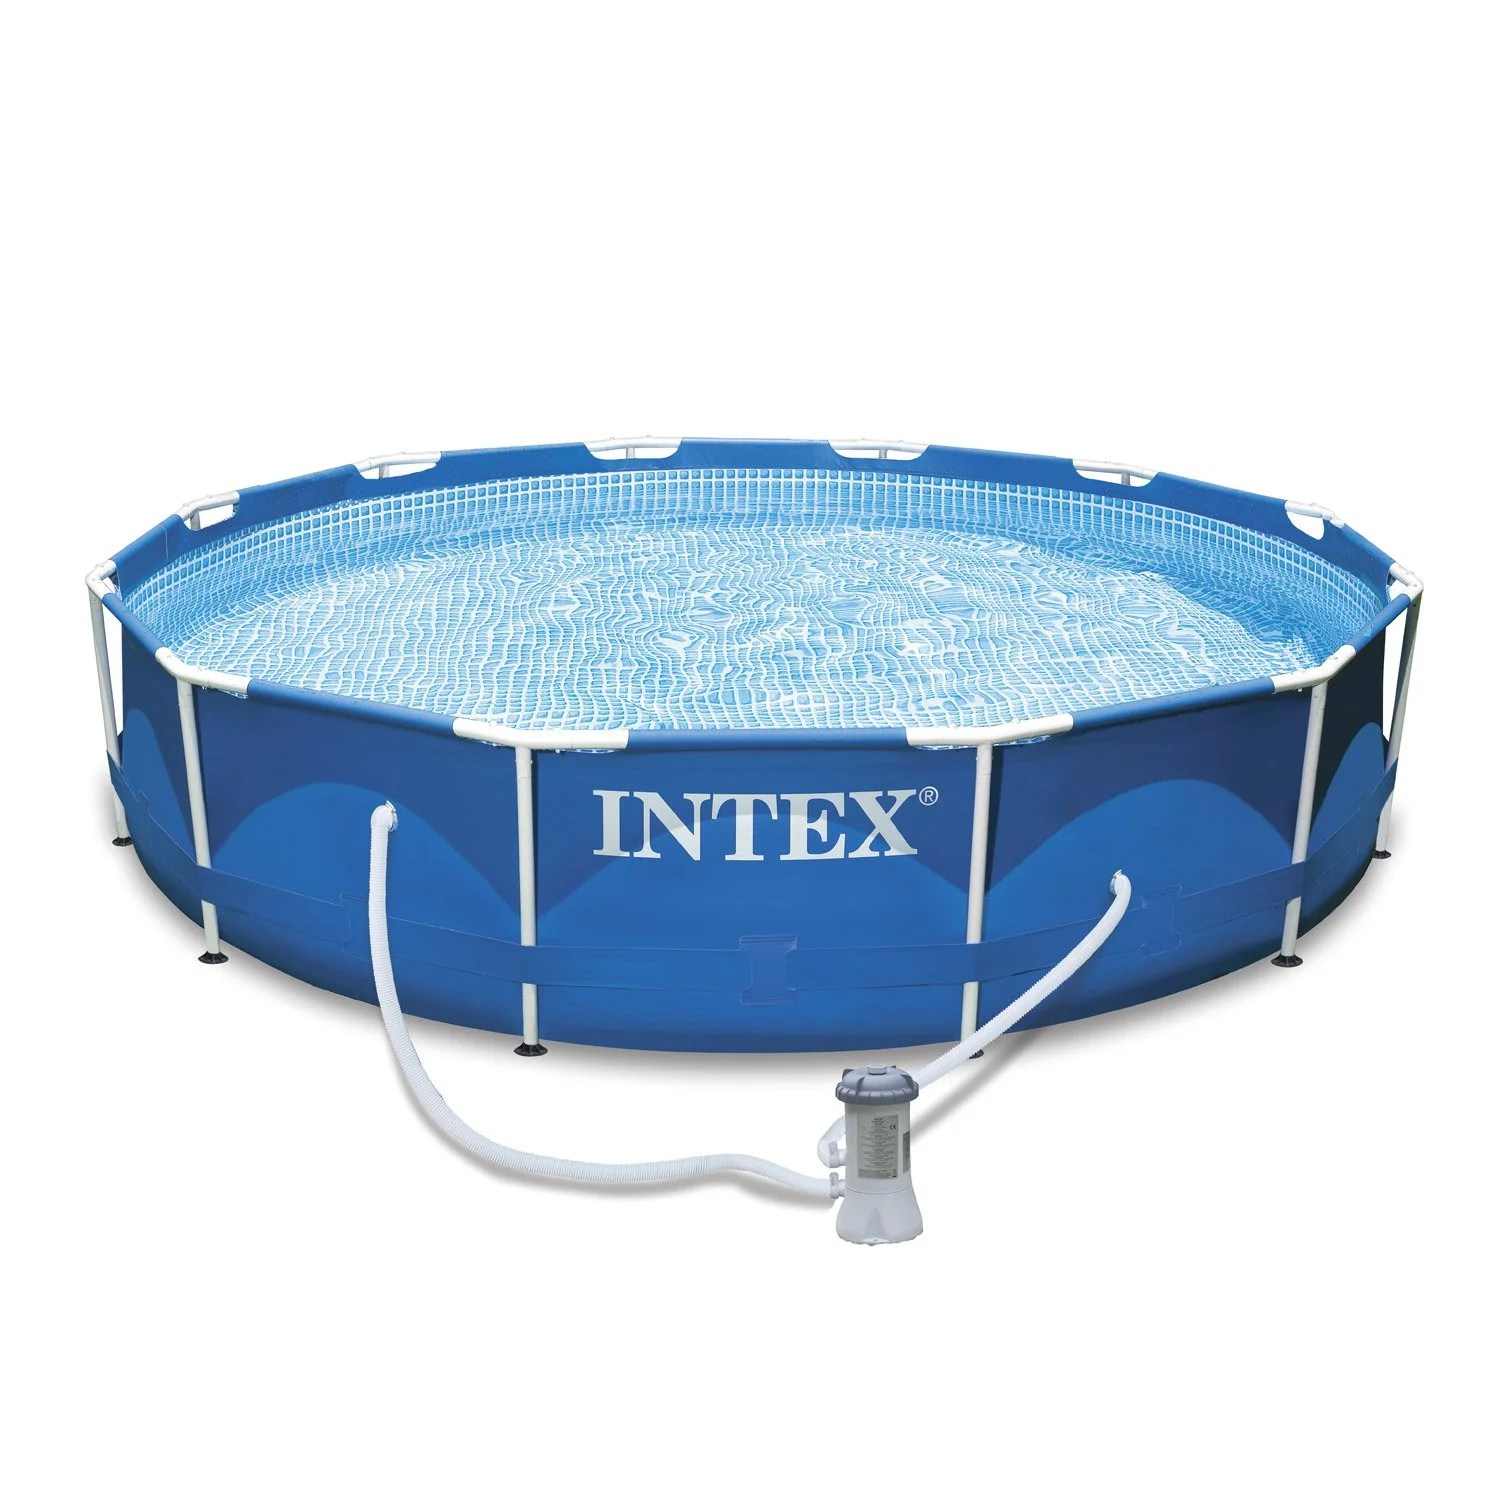 Leroy Merlin Piscine Hors Sol Intex Piscine Hors Sol Autoportante Tubulaire 305x76 Cm Intex